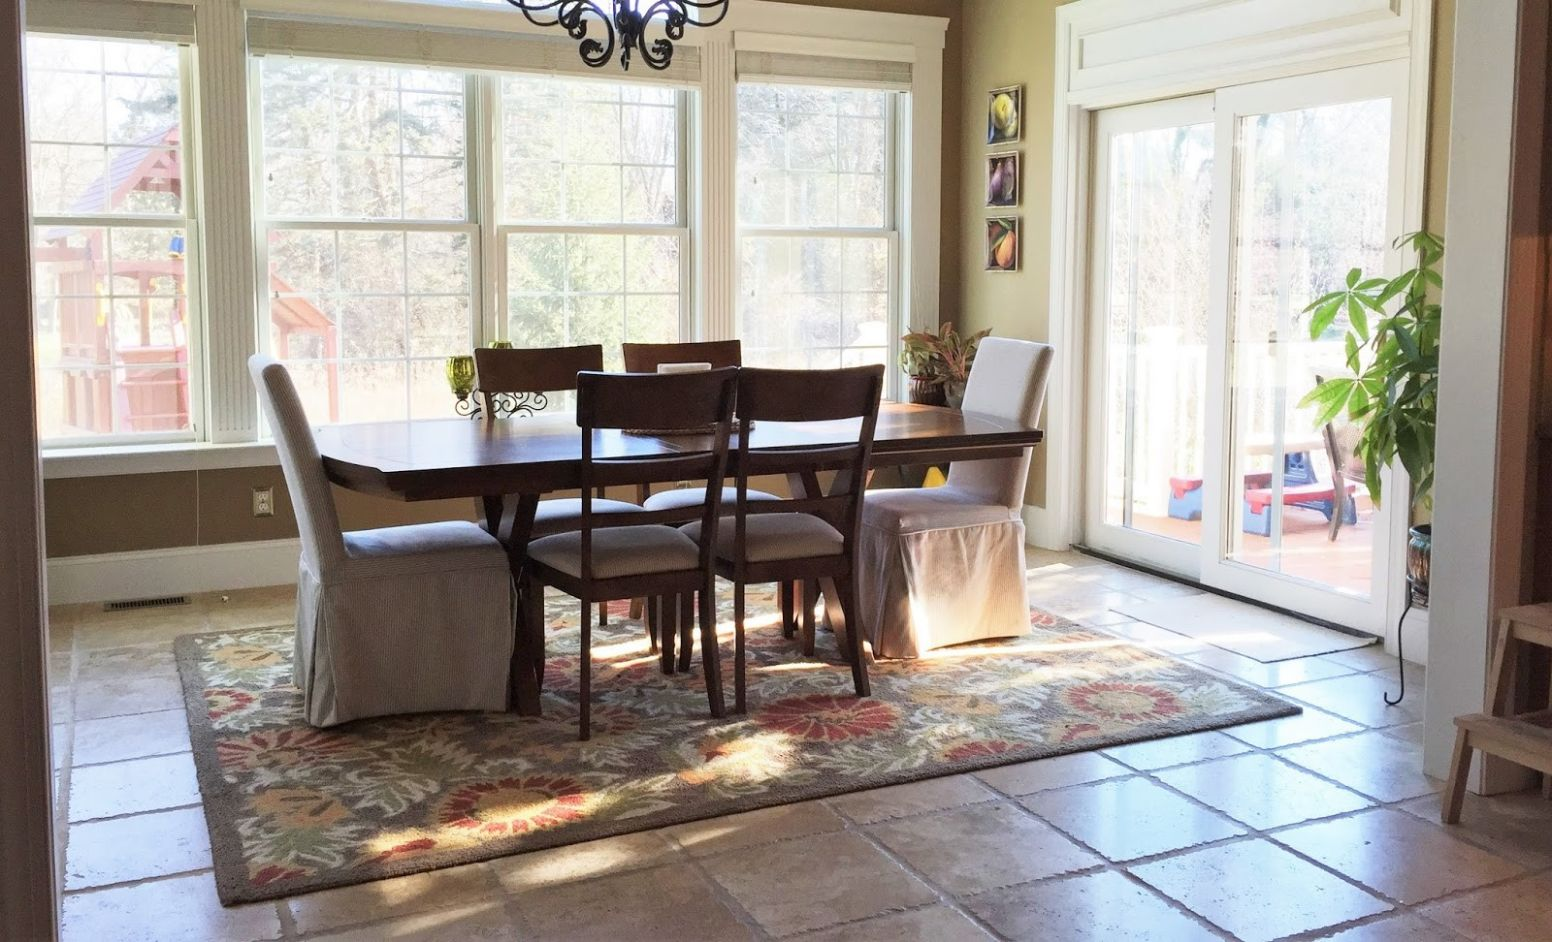 Sunroom Dining Room Fancy About Remodel Hom Sun Off Designs Office ..